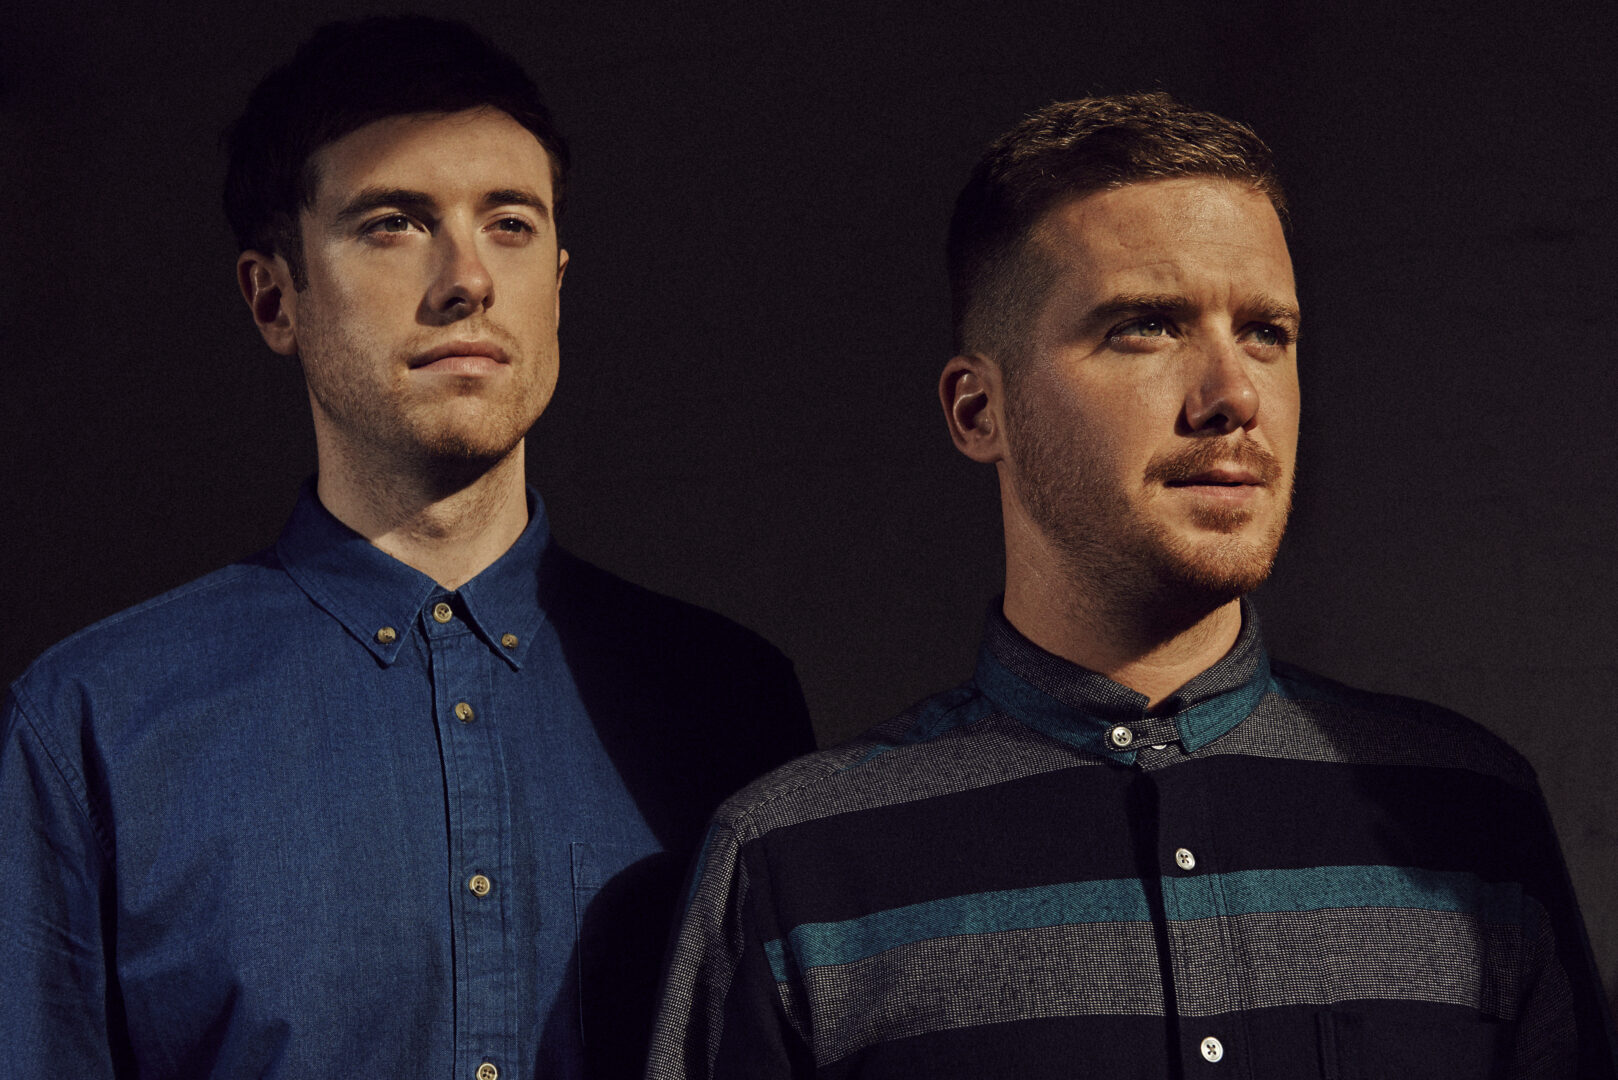 Gorgon City Announces U.S. Co-Headline Tour with Rudimental